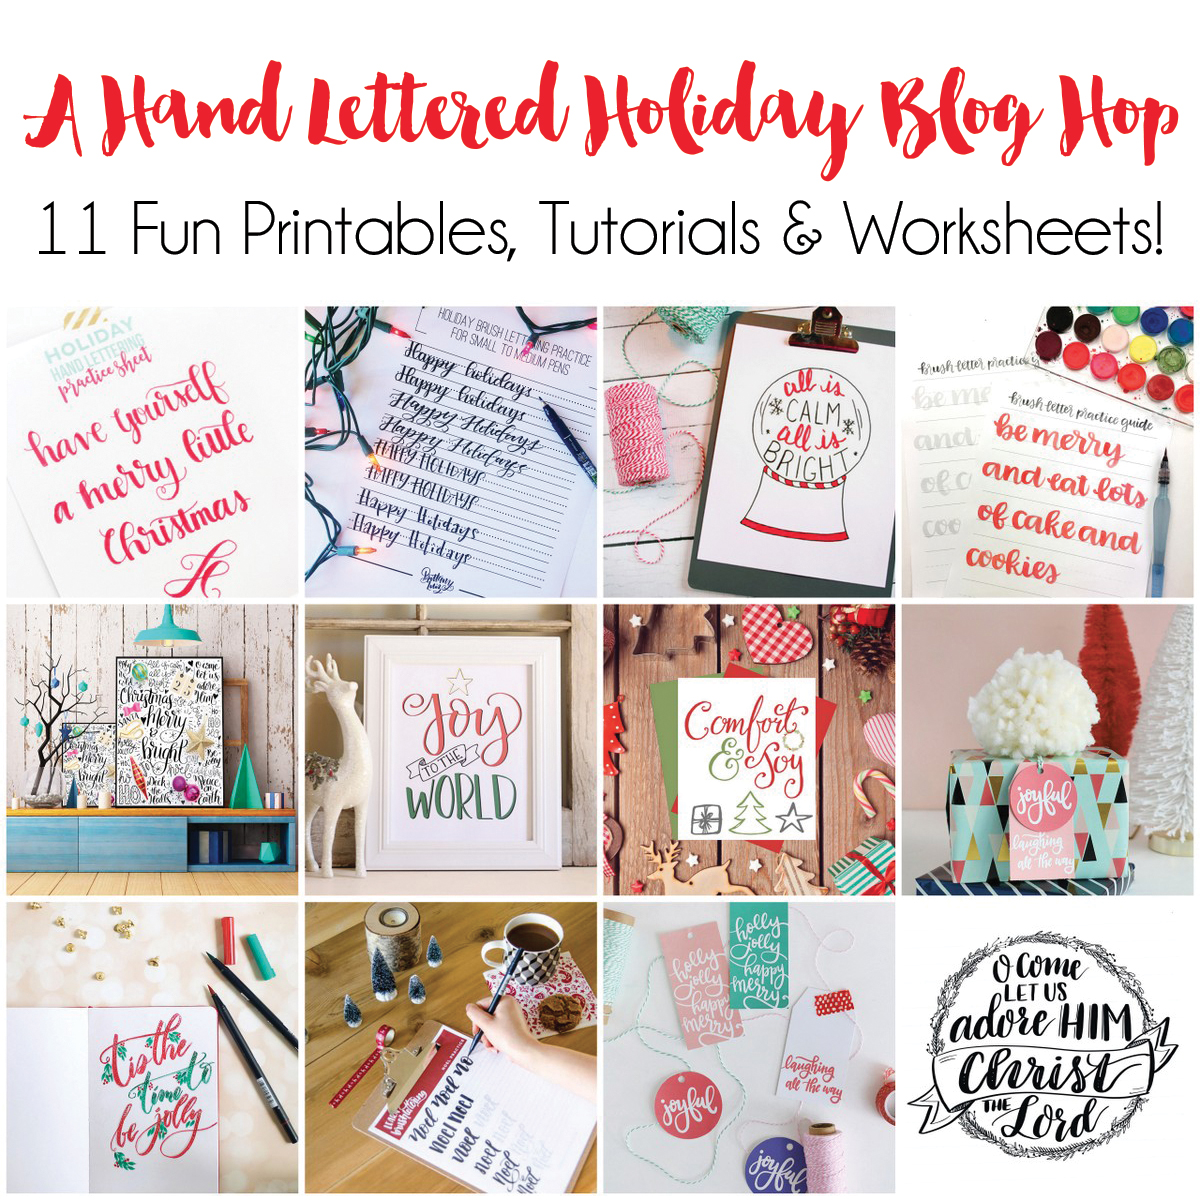 Hand lettered holiday blog hop with 11 hand lettered tutorials, prints, and practice sheets.